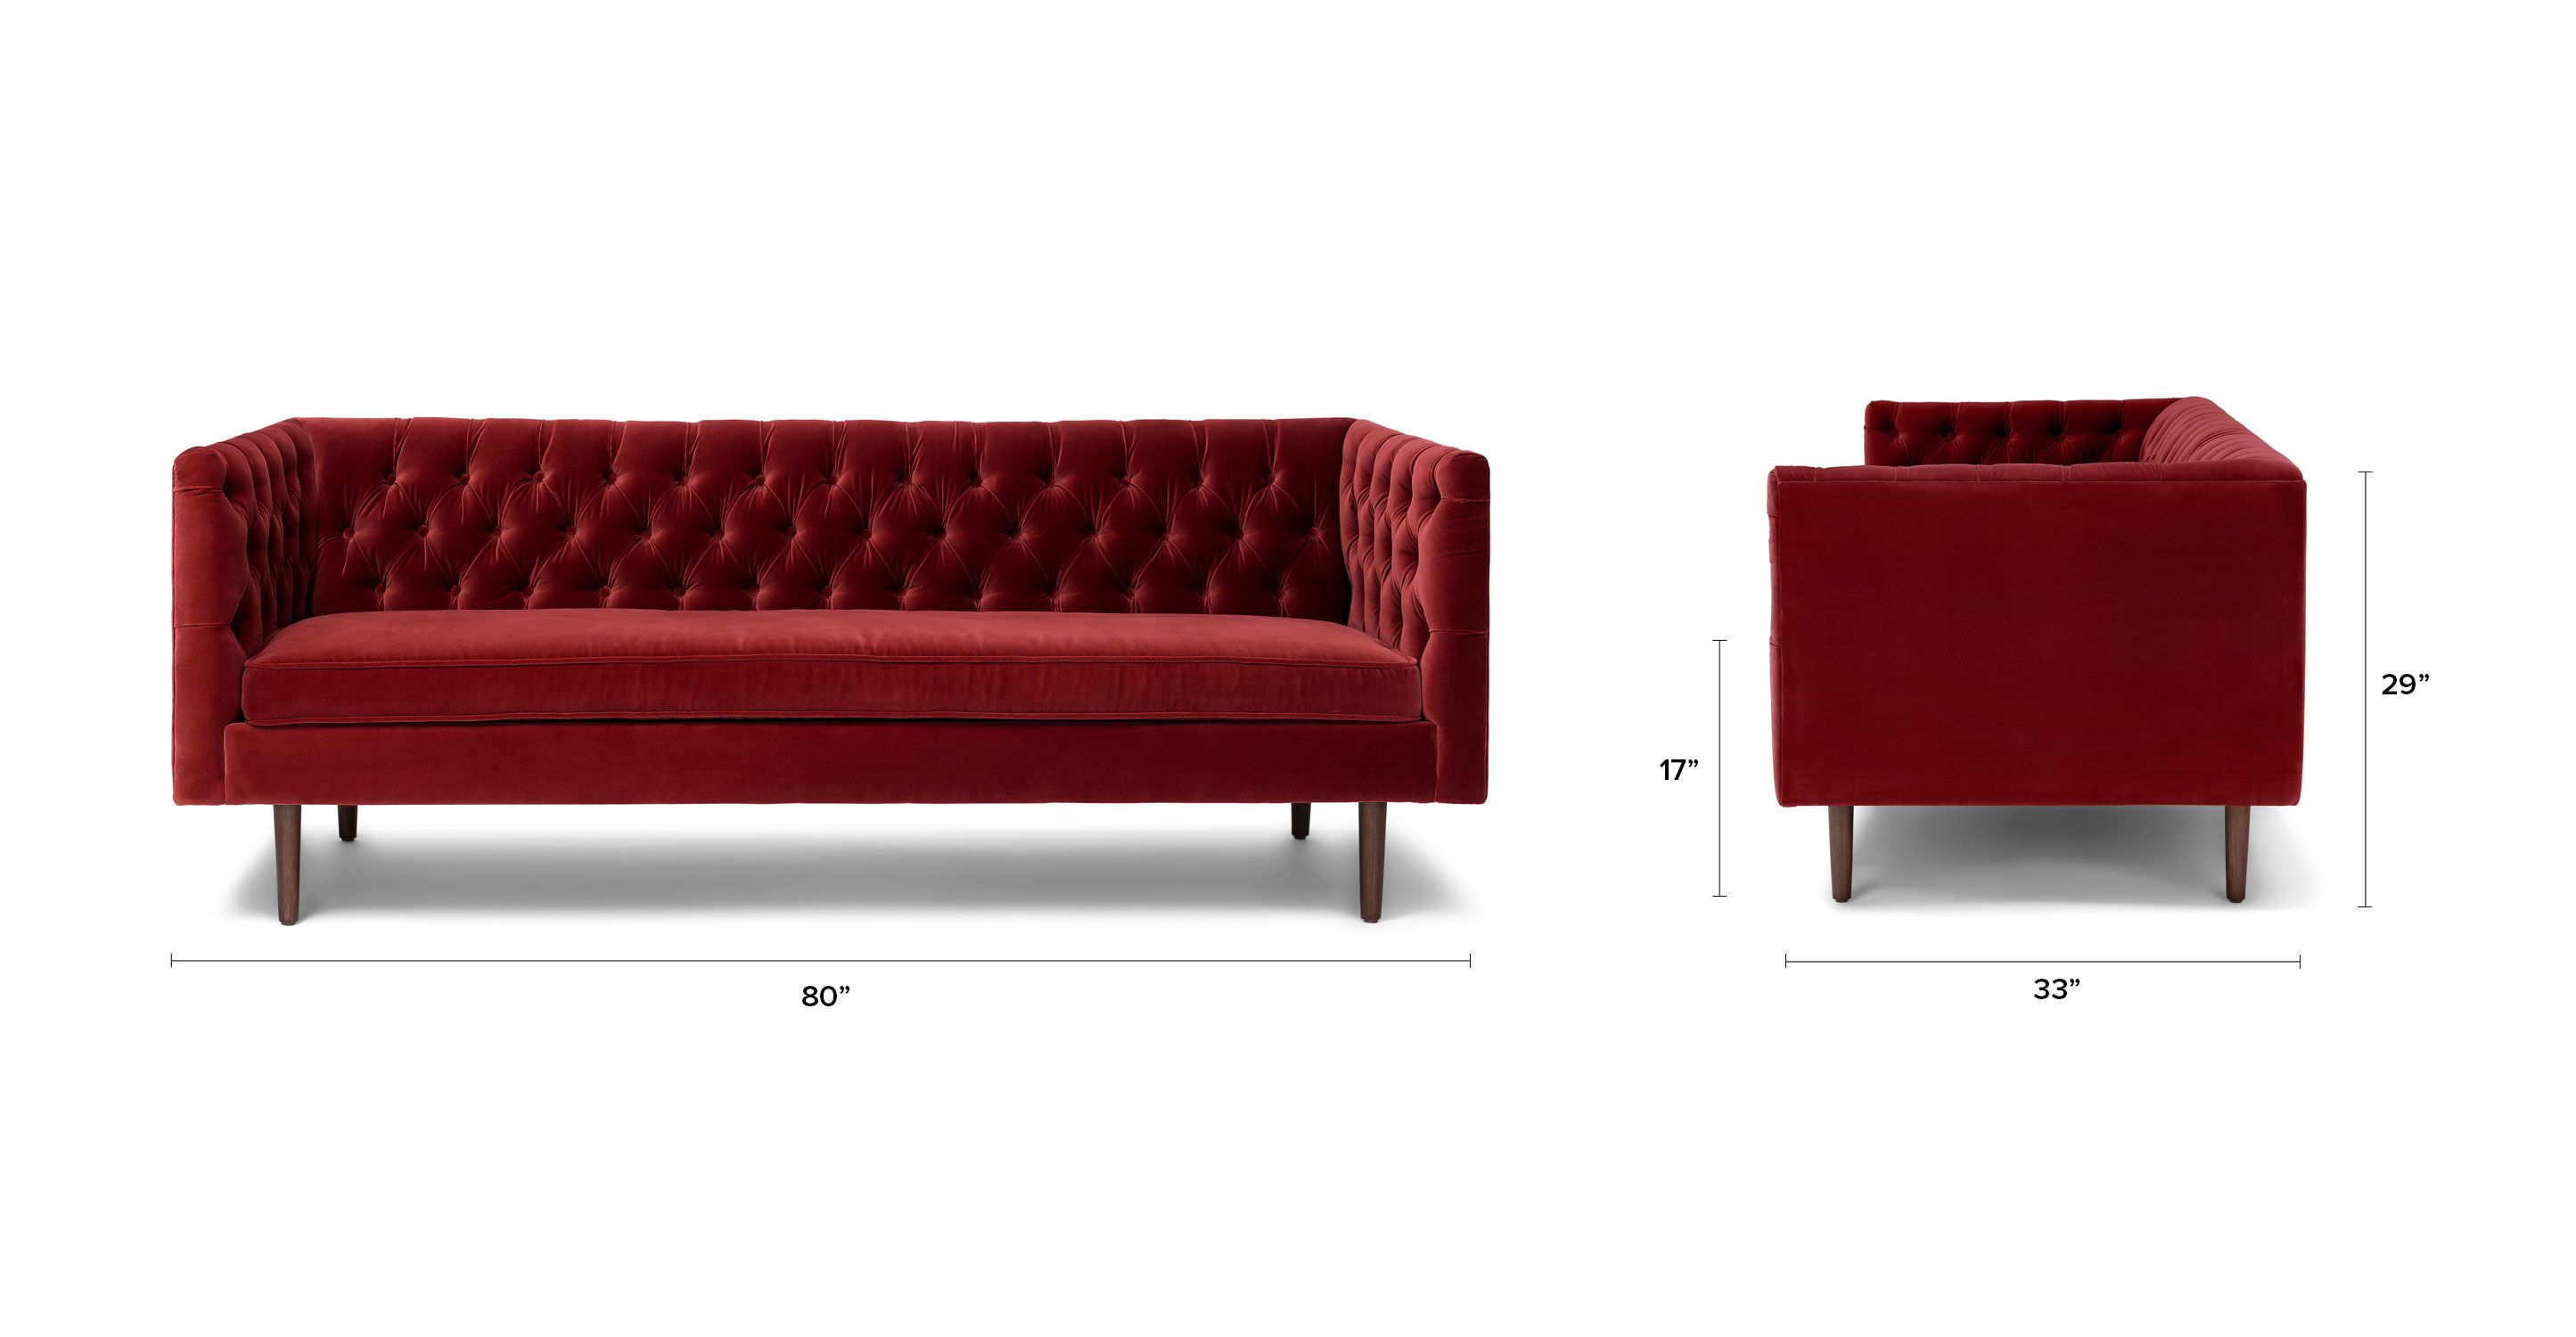 Red Velvet Tufted Sofa Upholstered